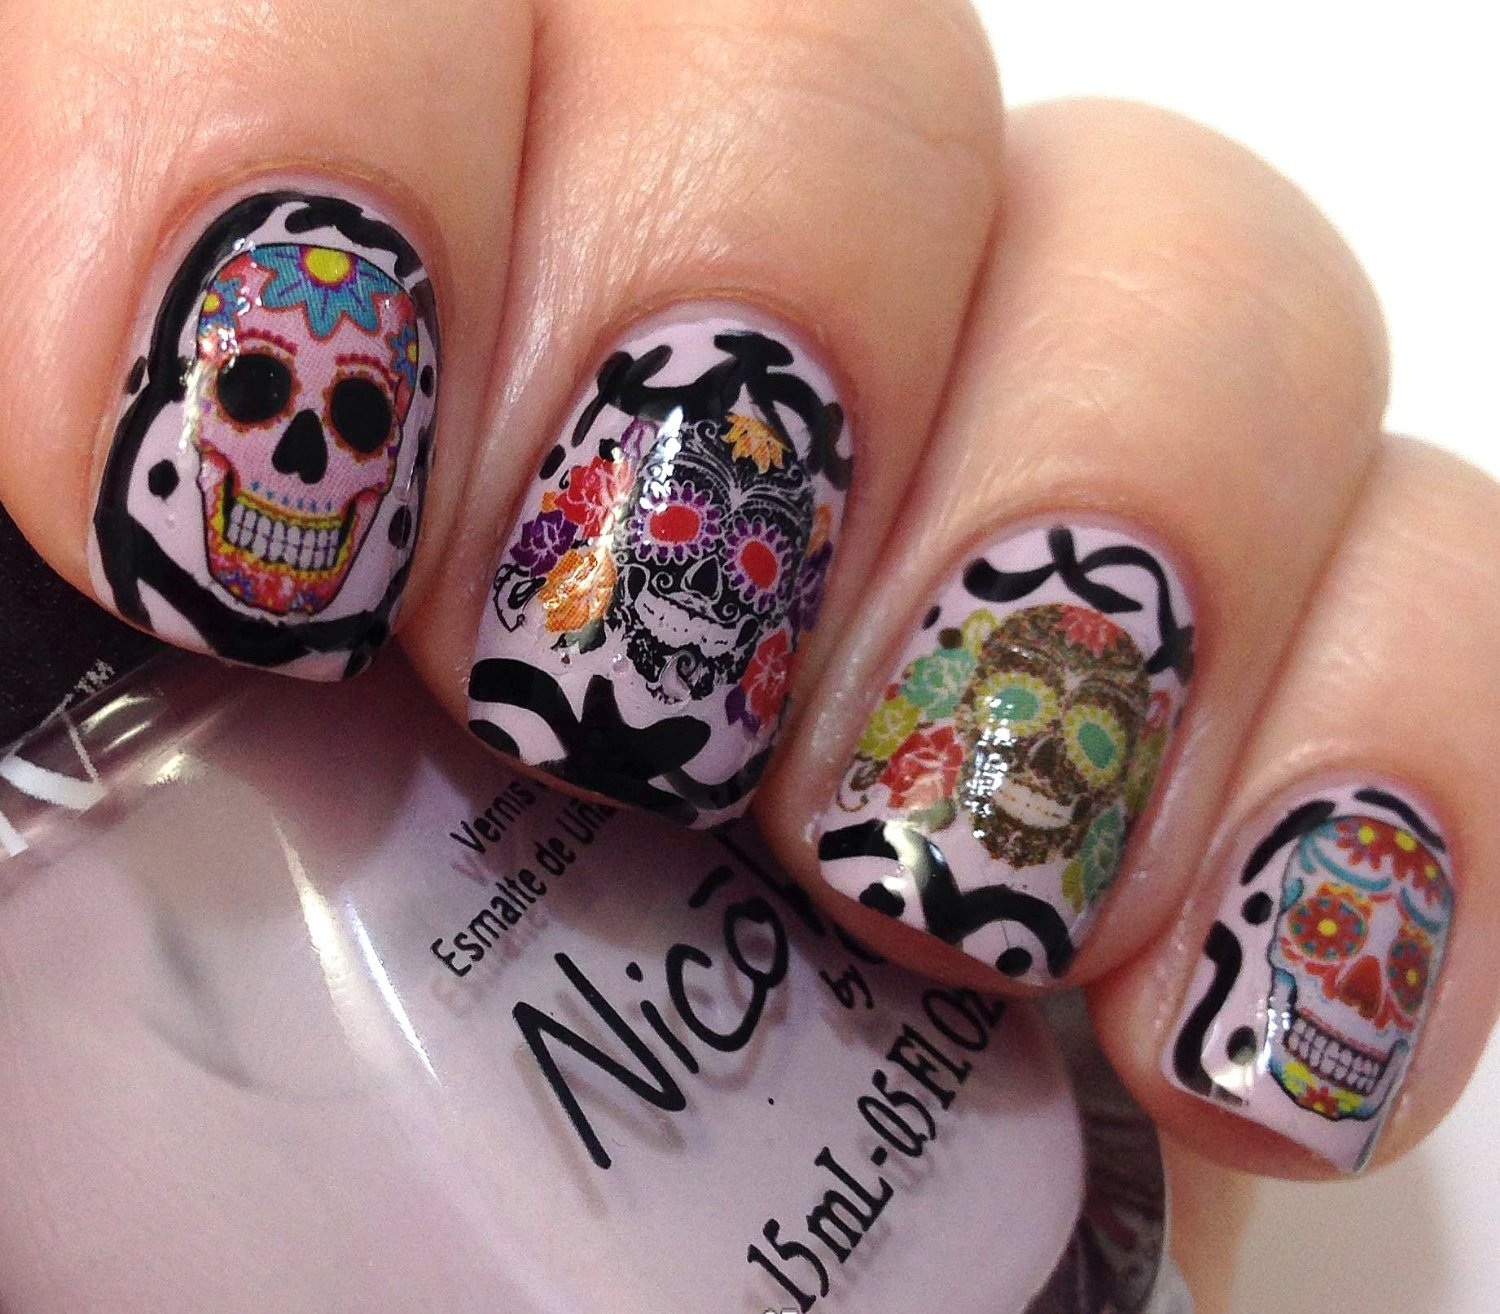 Amazon.com: Sugar Skull Nail Art Day of the Dead Decals Assortment ...